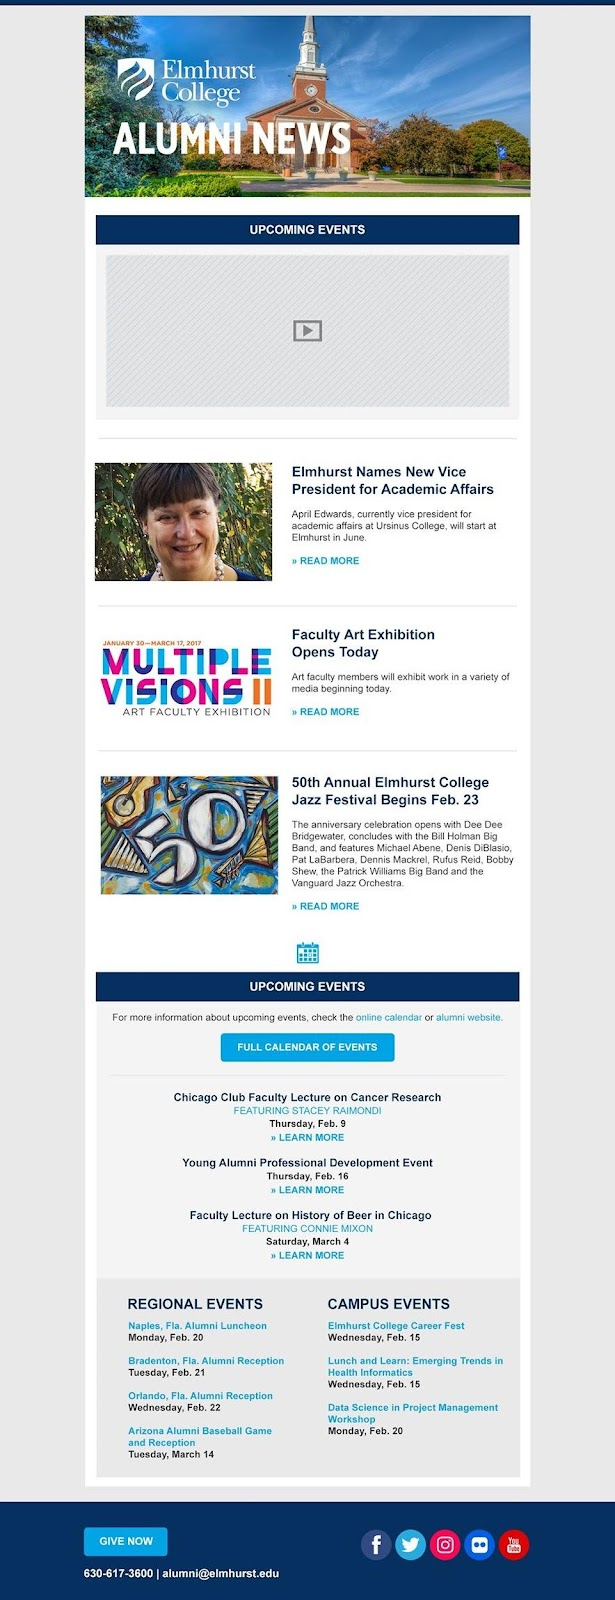 Elmhurst College email example